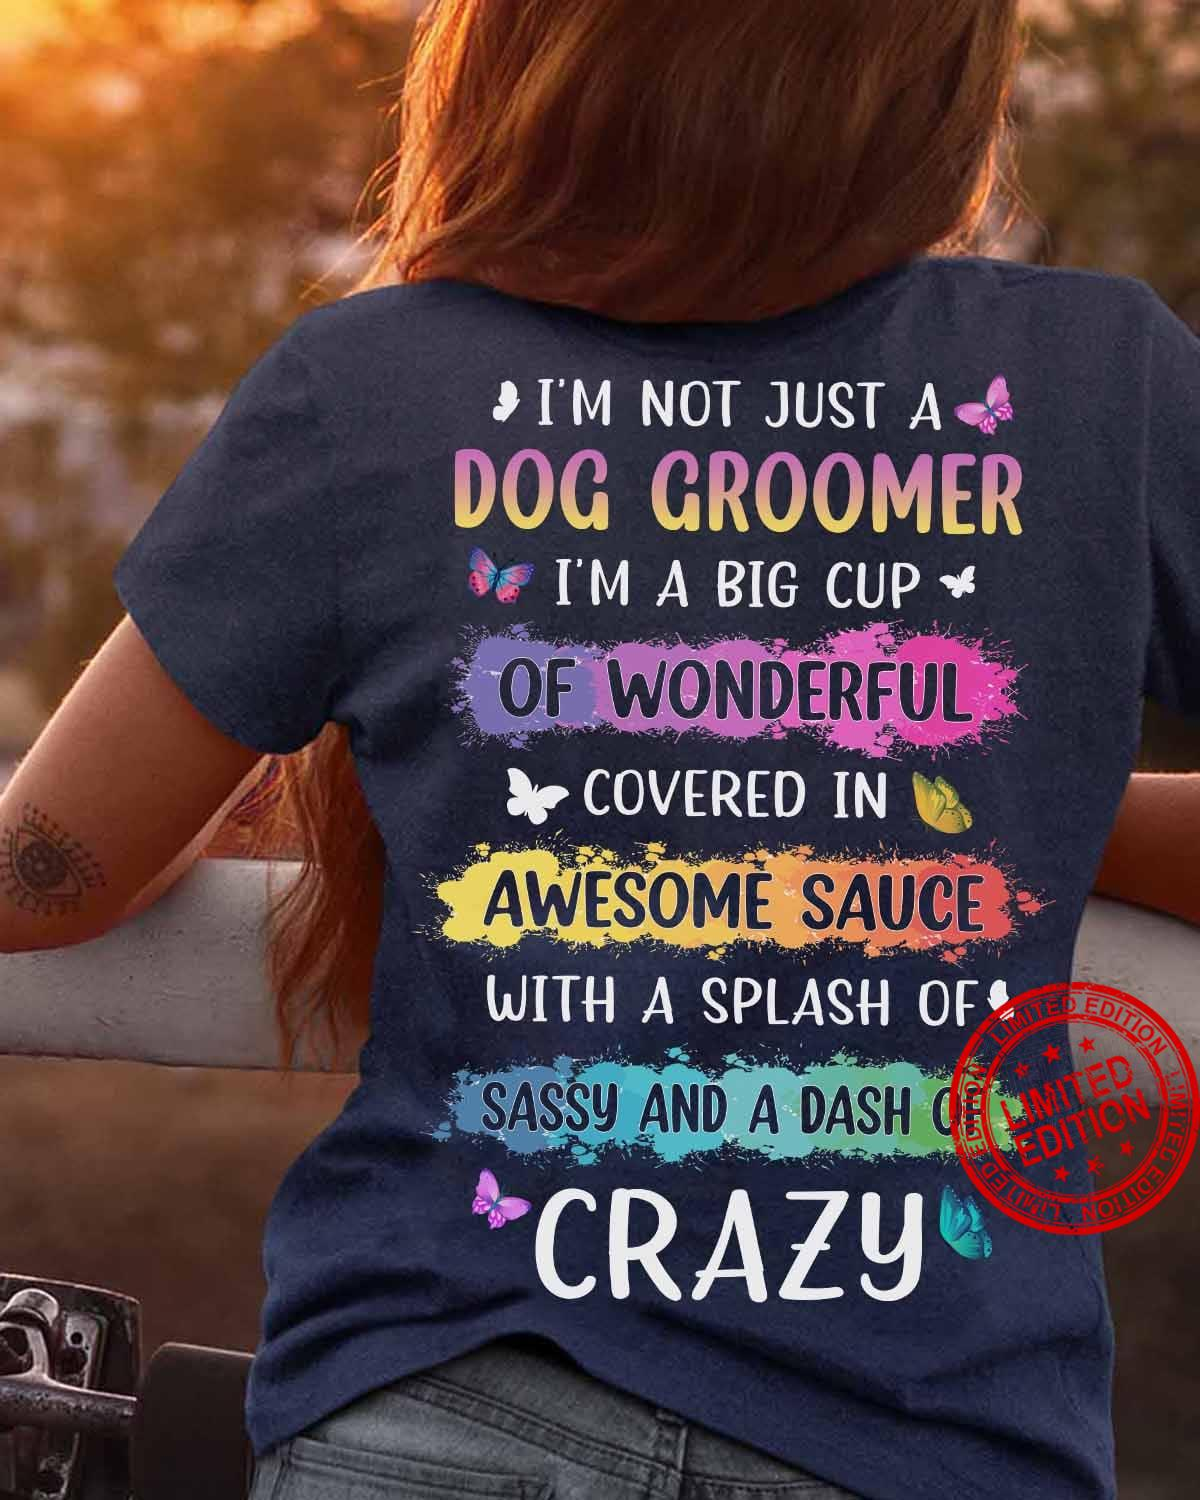 I'm Not Just A Dog Groomer I'm A Big Cup Of Wonderful Covered In Awesome Sauce With A Splash Of Sassy And A Dash Of Crazy Shirt